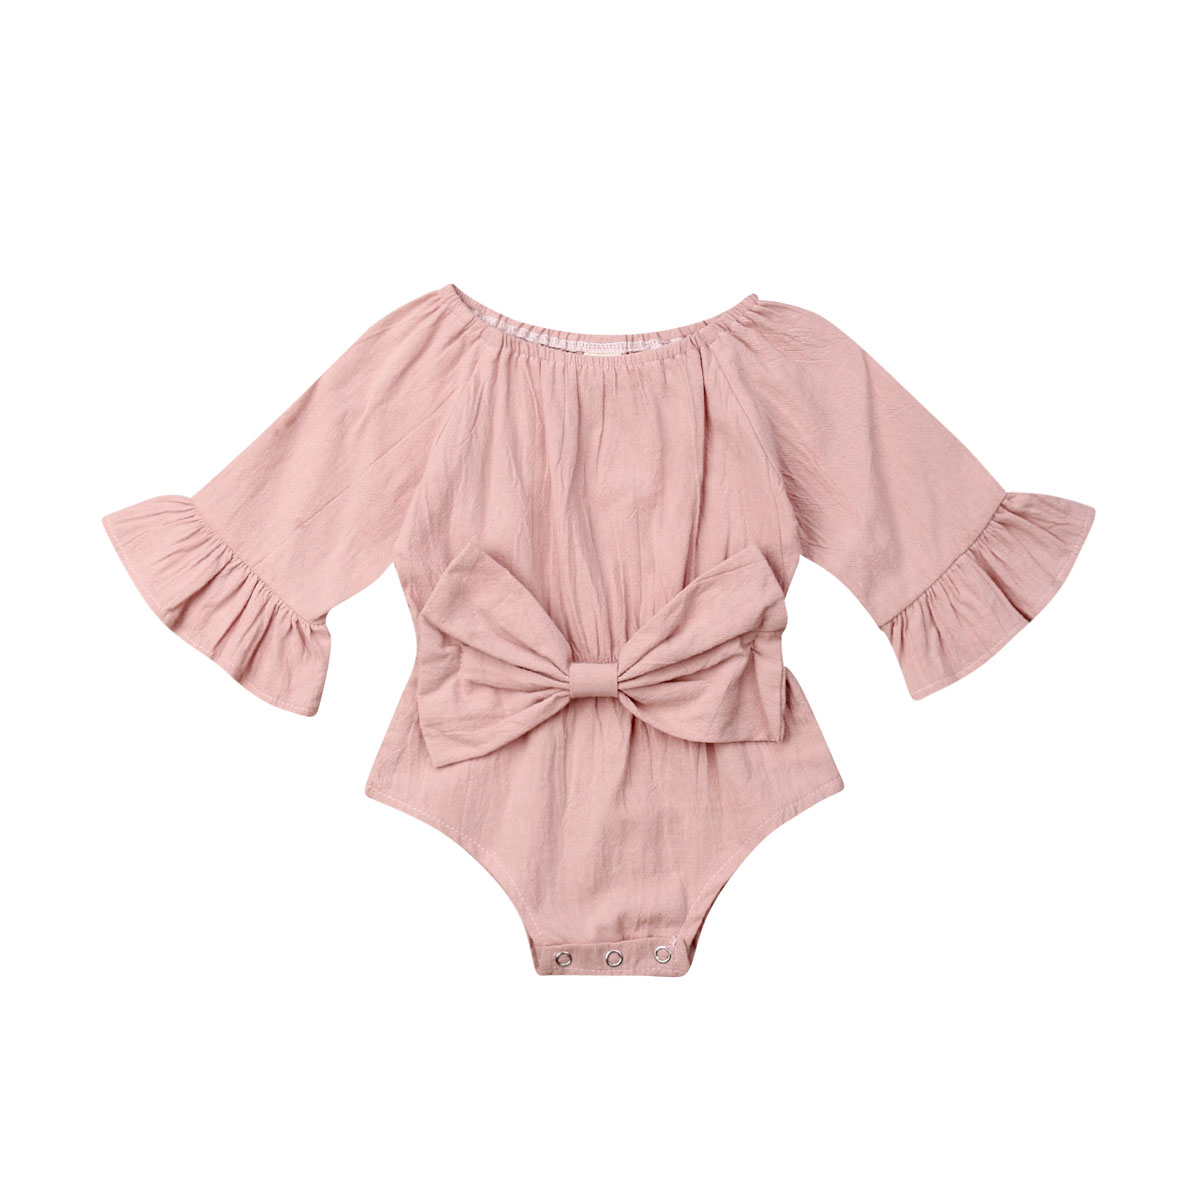 Newborn Infant Baby Girls Rompers Long Sleeve Bowknot Jumpsuit Playsuit Autumn Spring Baby Girls Costumes Clothes